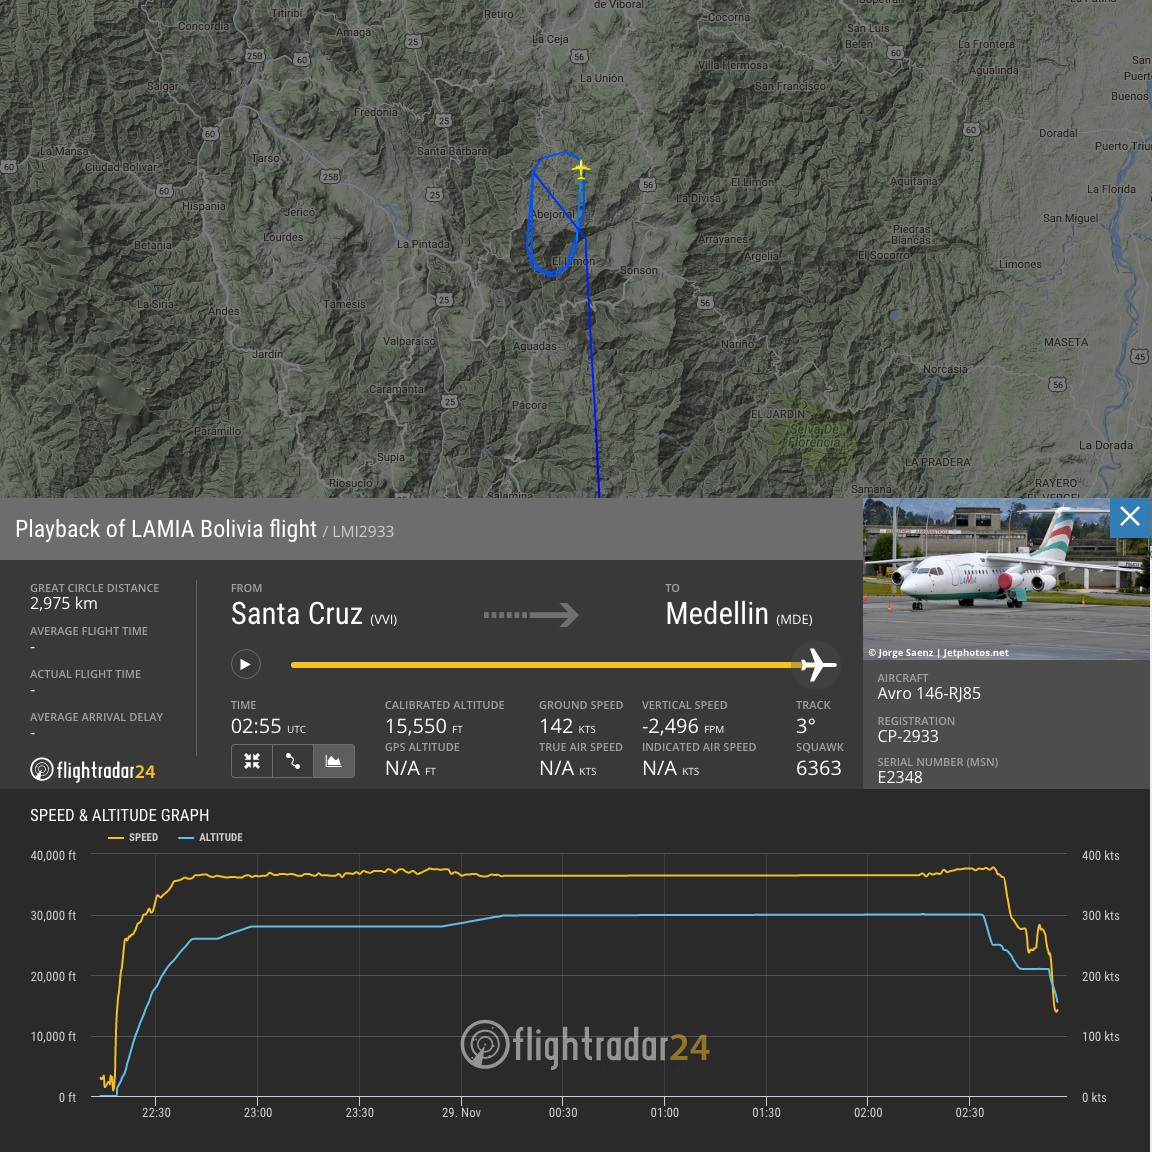 Flight path, altitude, and ground speed data for LMI2933